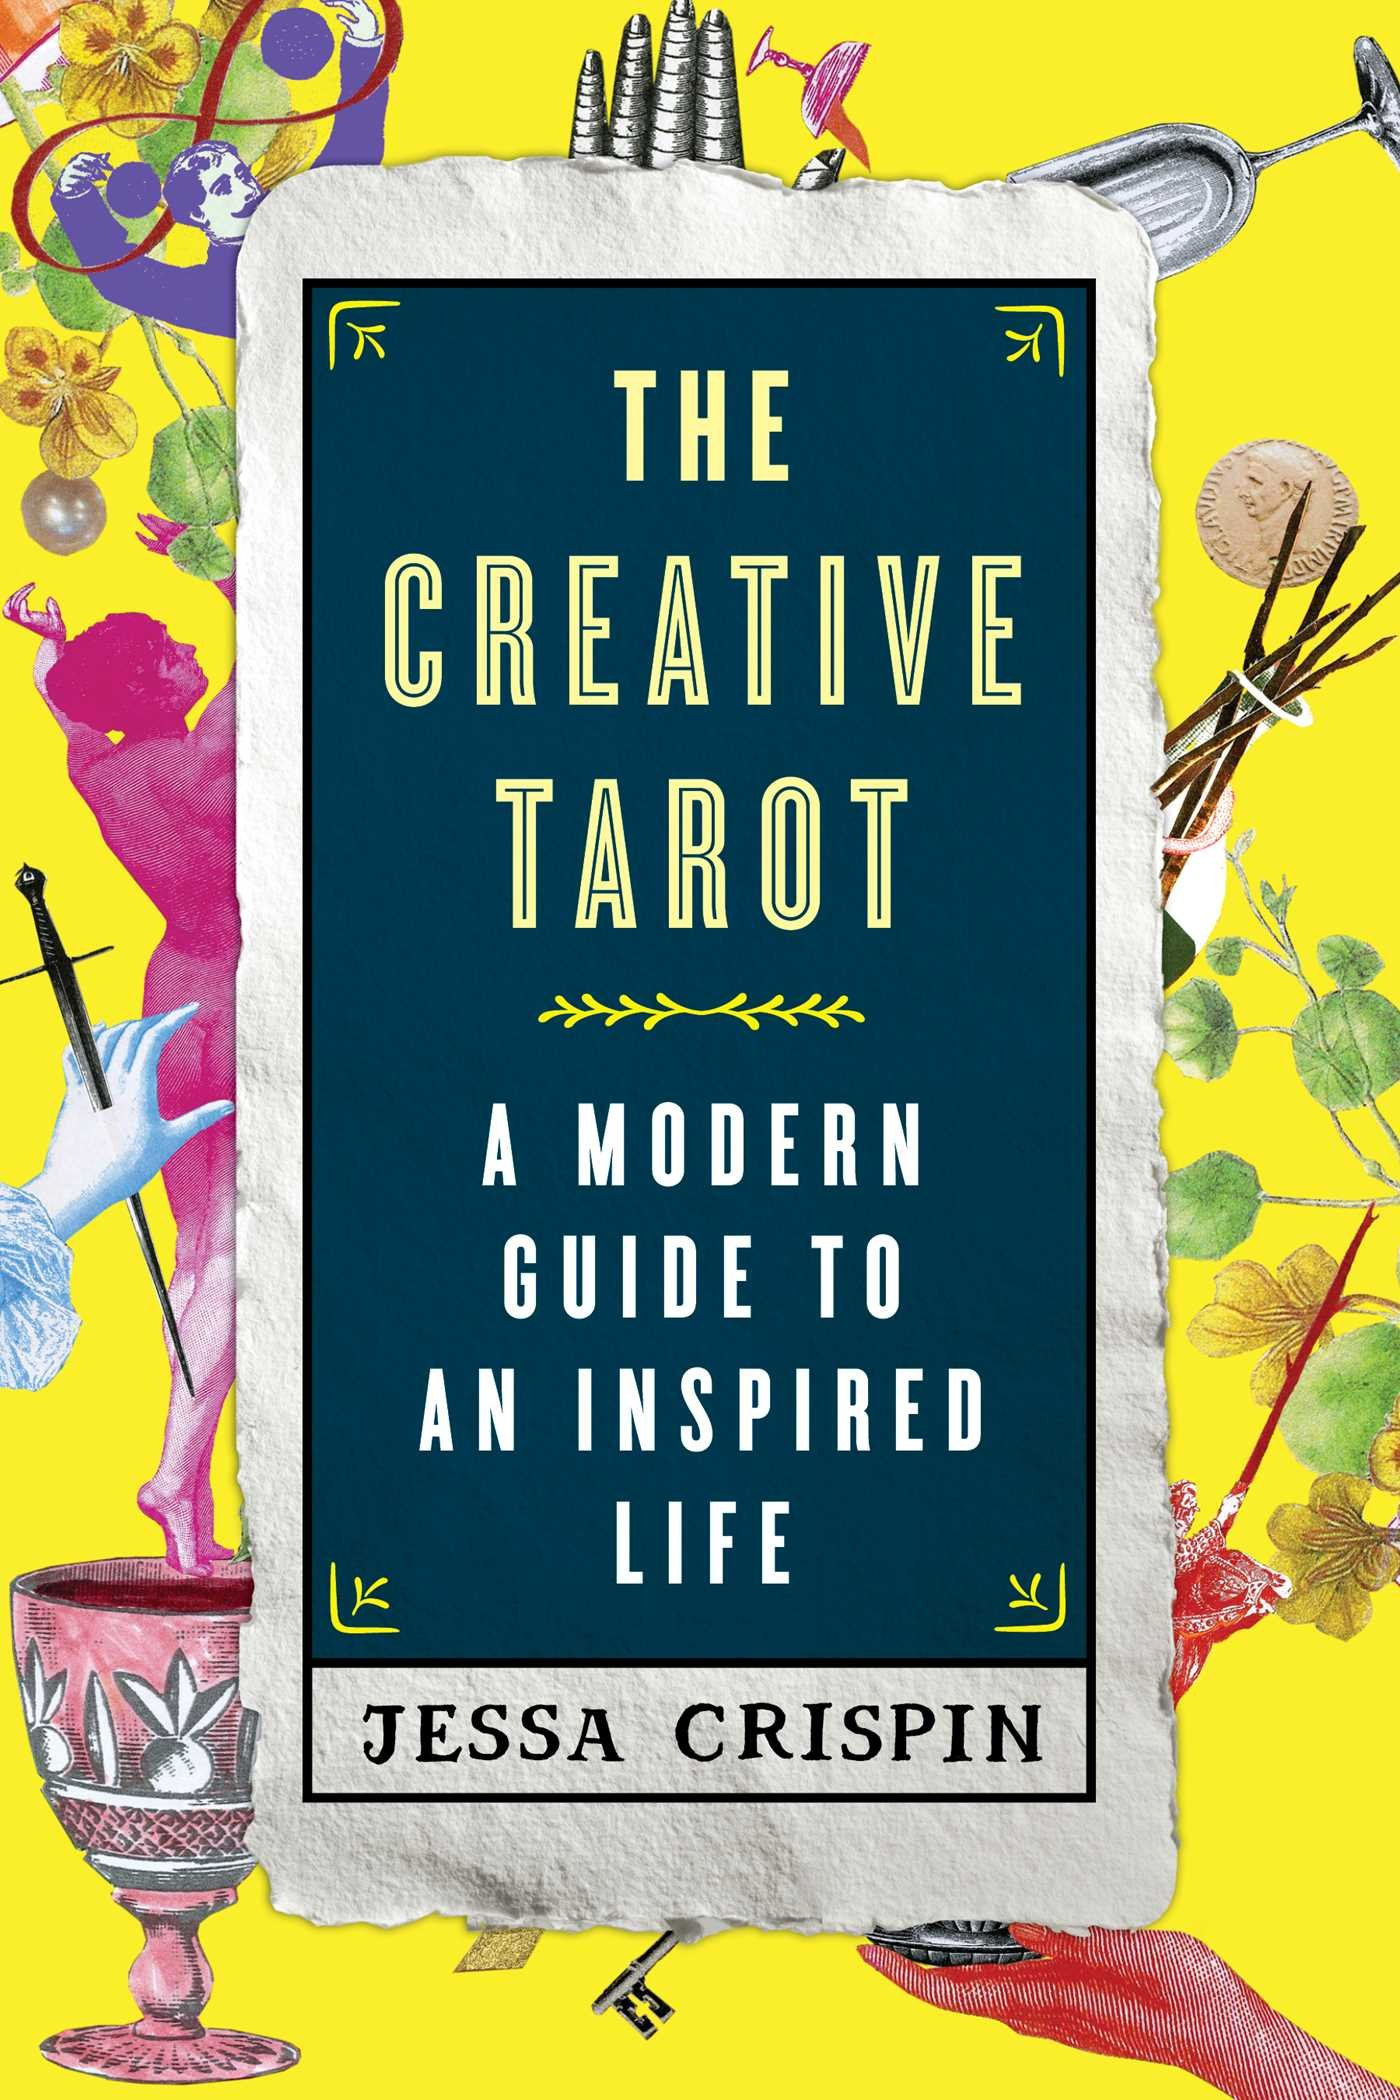 Image OfThe Creative Tarot: A Modern Guide To An Inspired Life